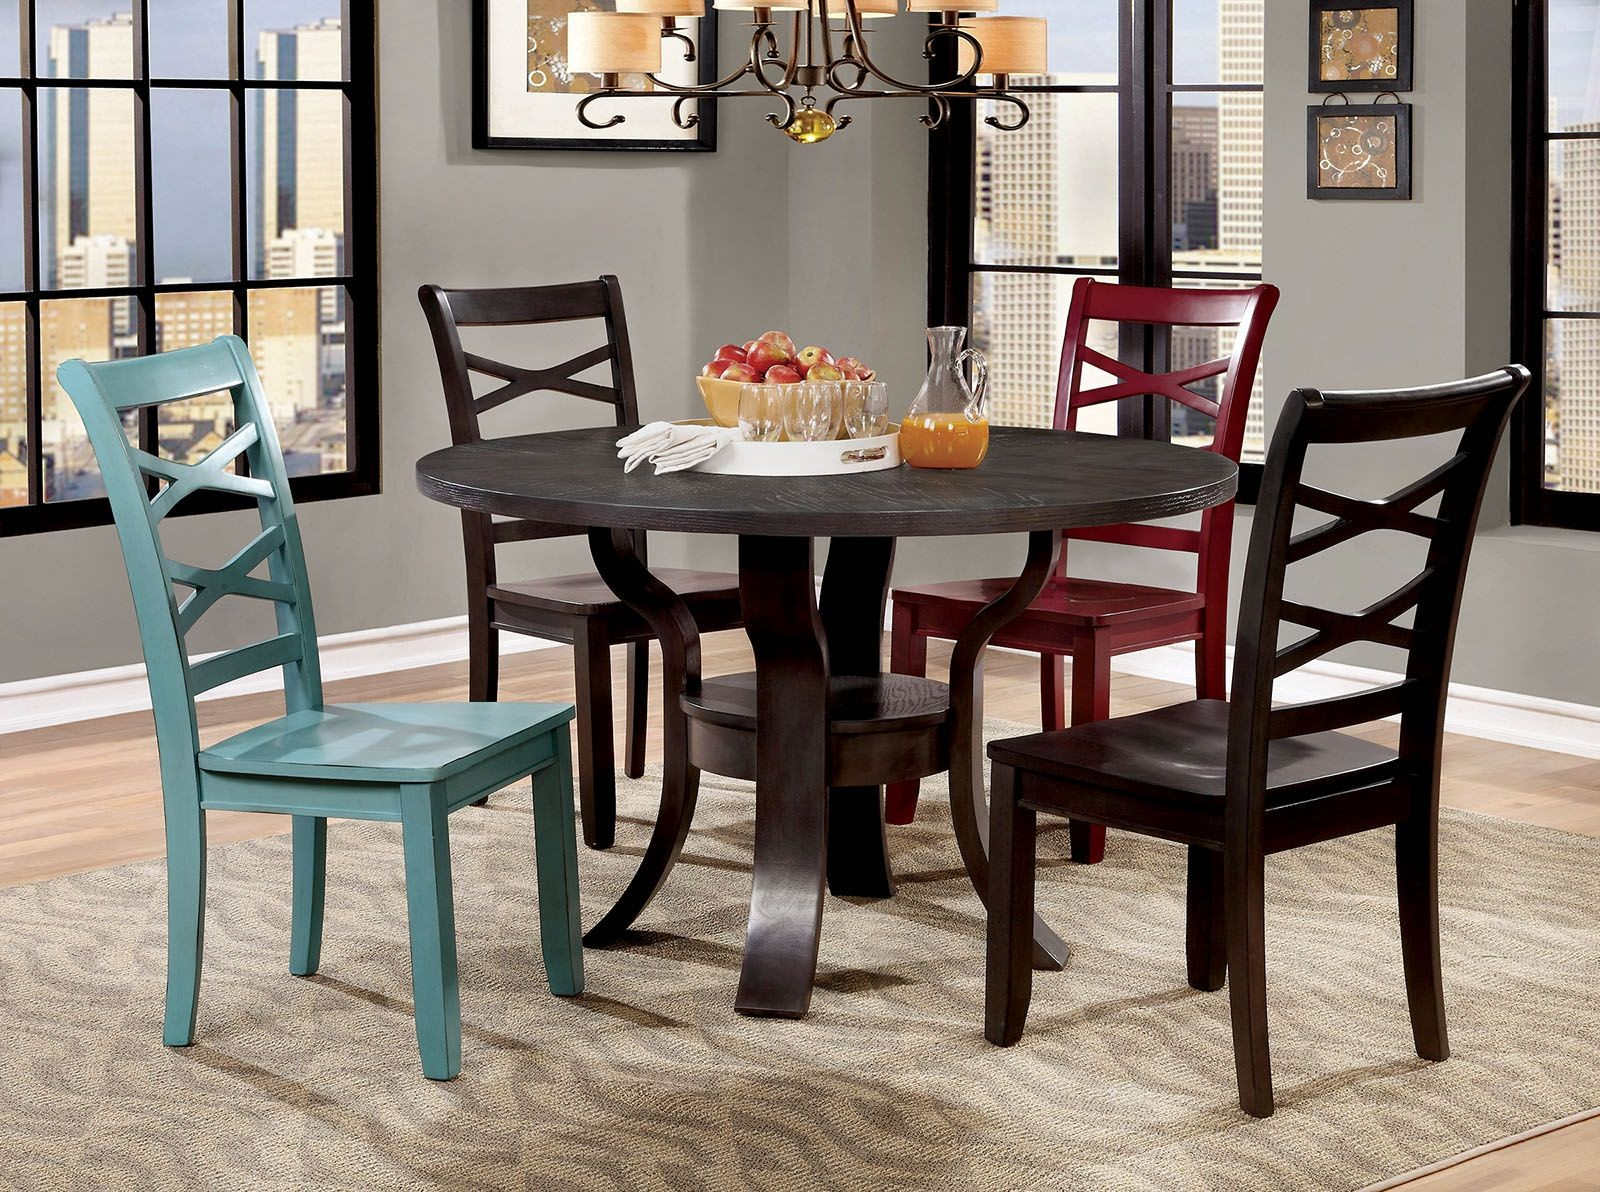 espresso dining room sets | Giselle Espresso Round Dining Room Set from Furniture of ...